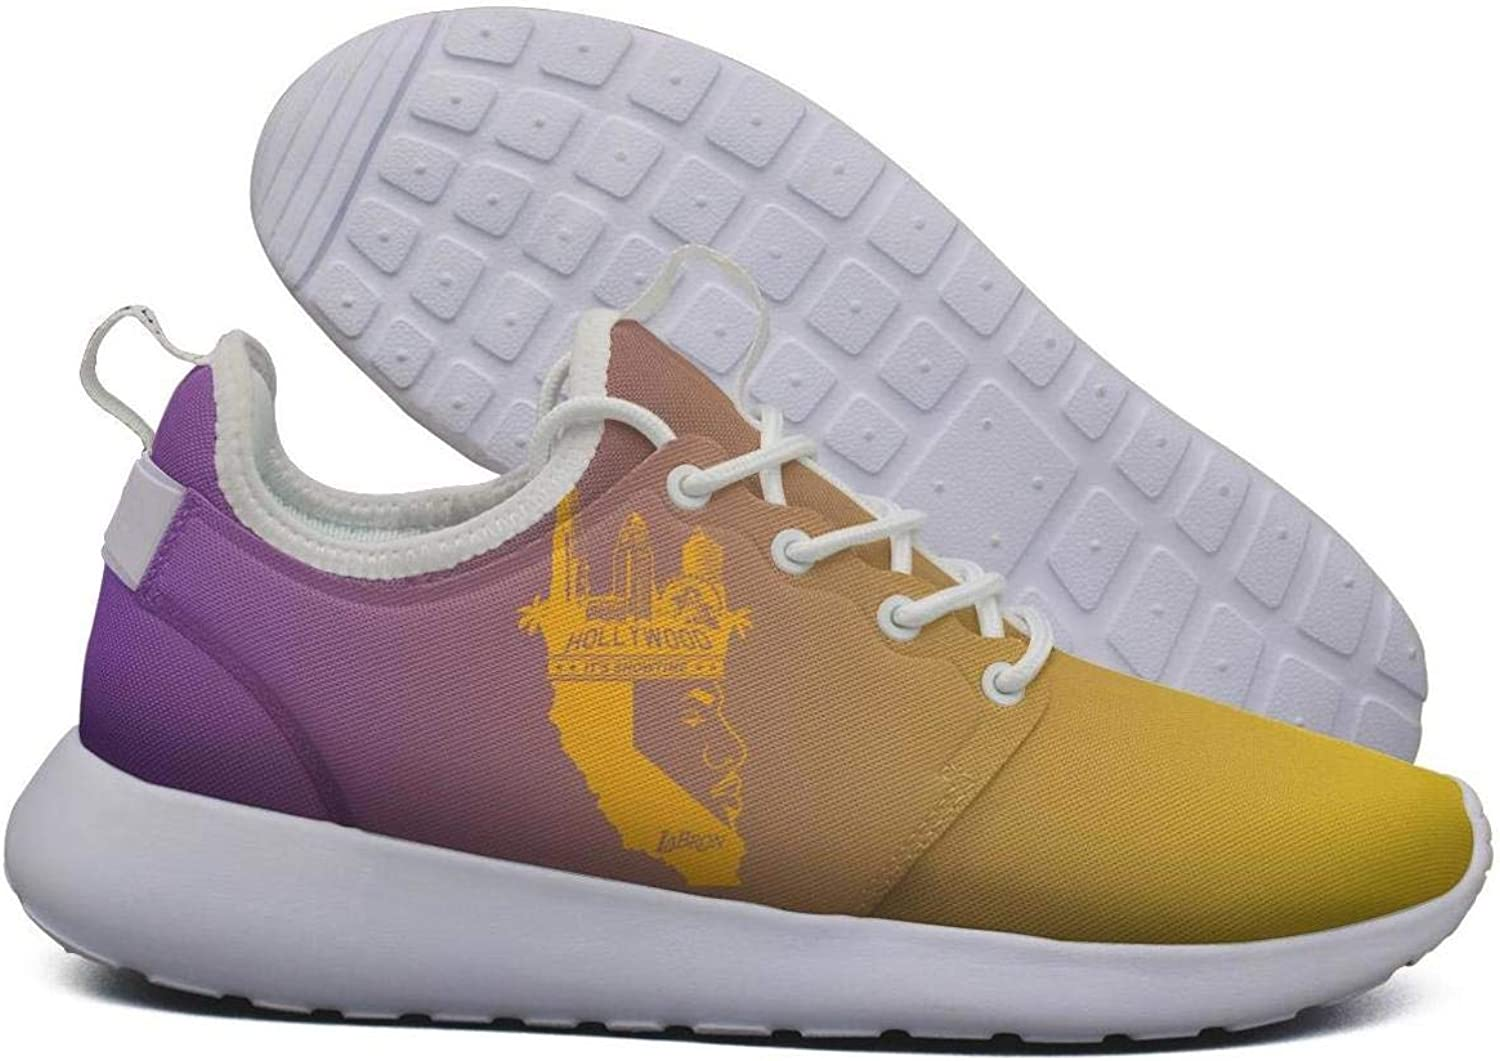 Womens Roshe Two Lightweight Yellow_Basketball_23_Crown_Kings_LA Cute Road Running mesh shoes